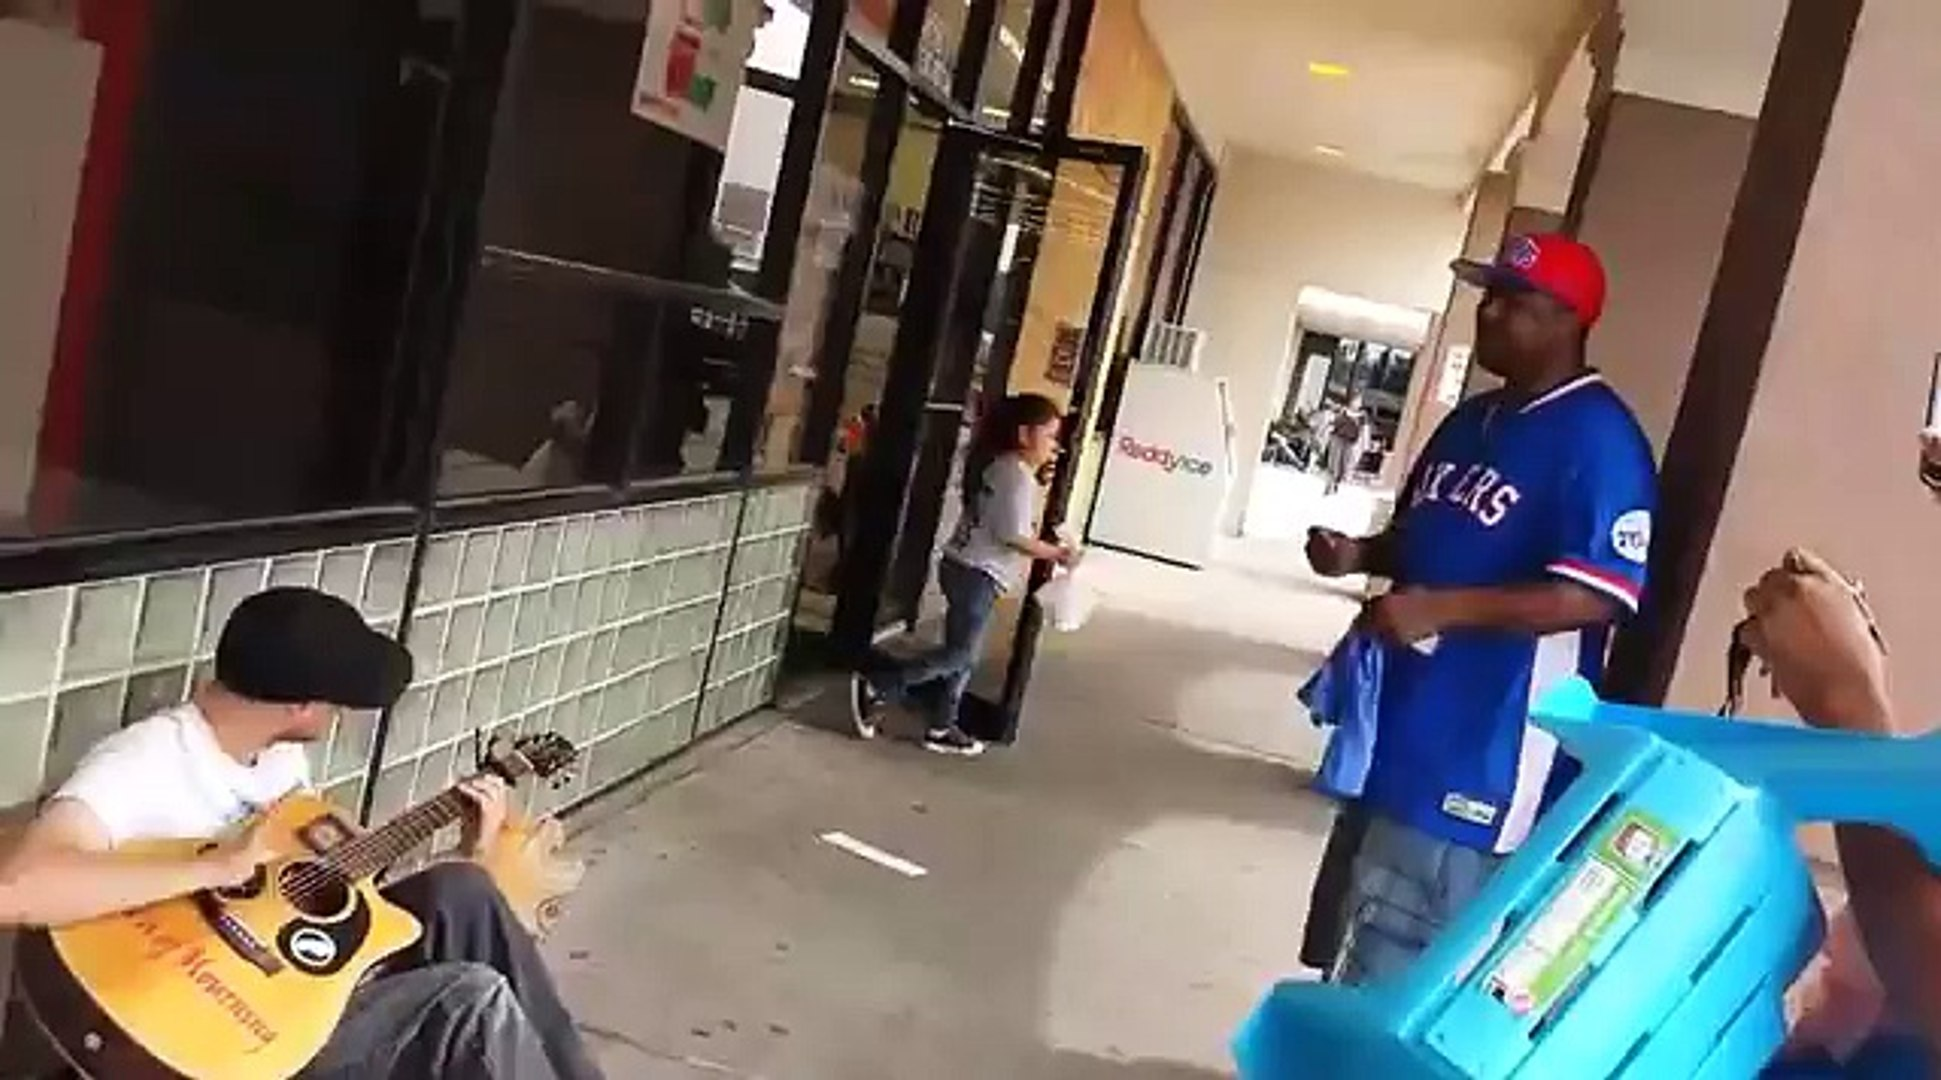 A man films this street musician when a stranger approaches